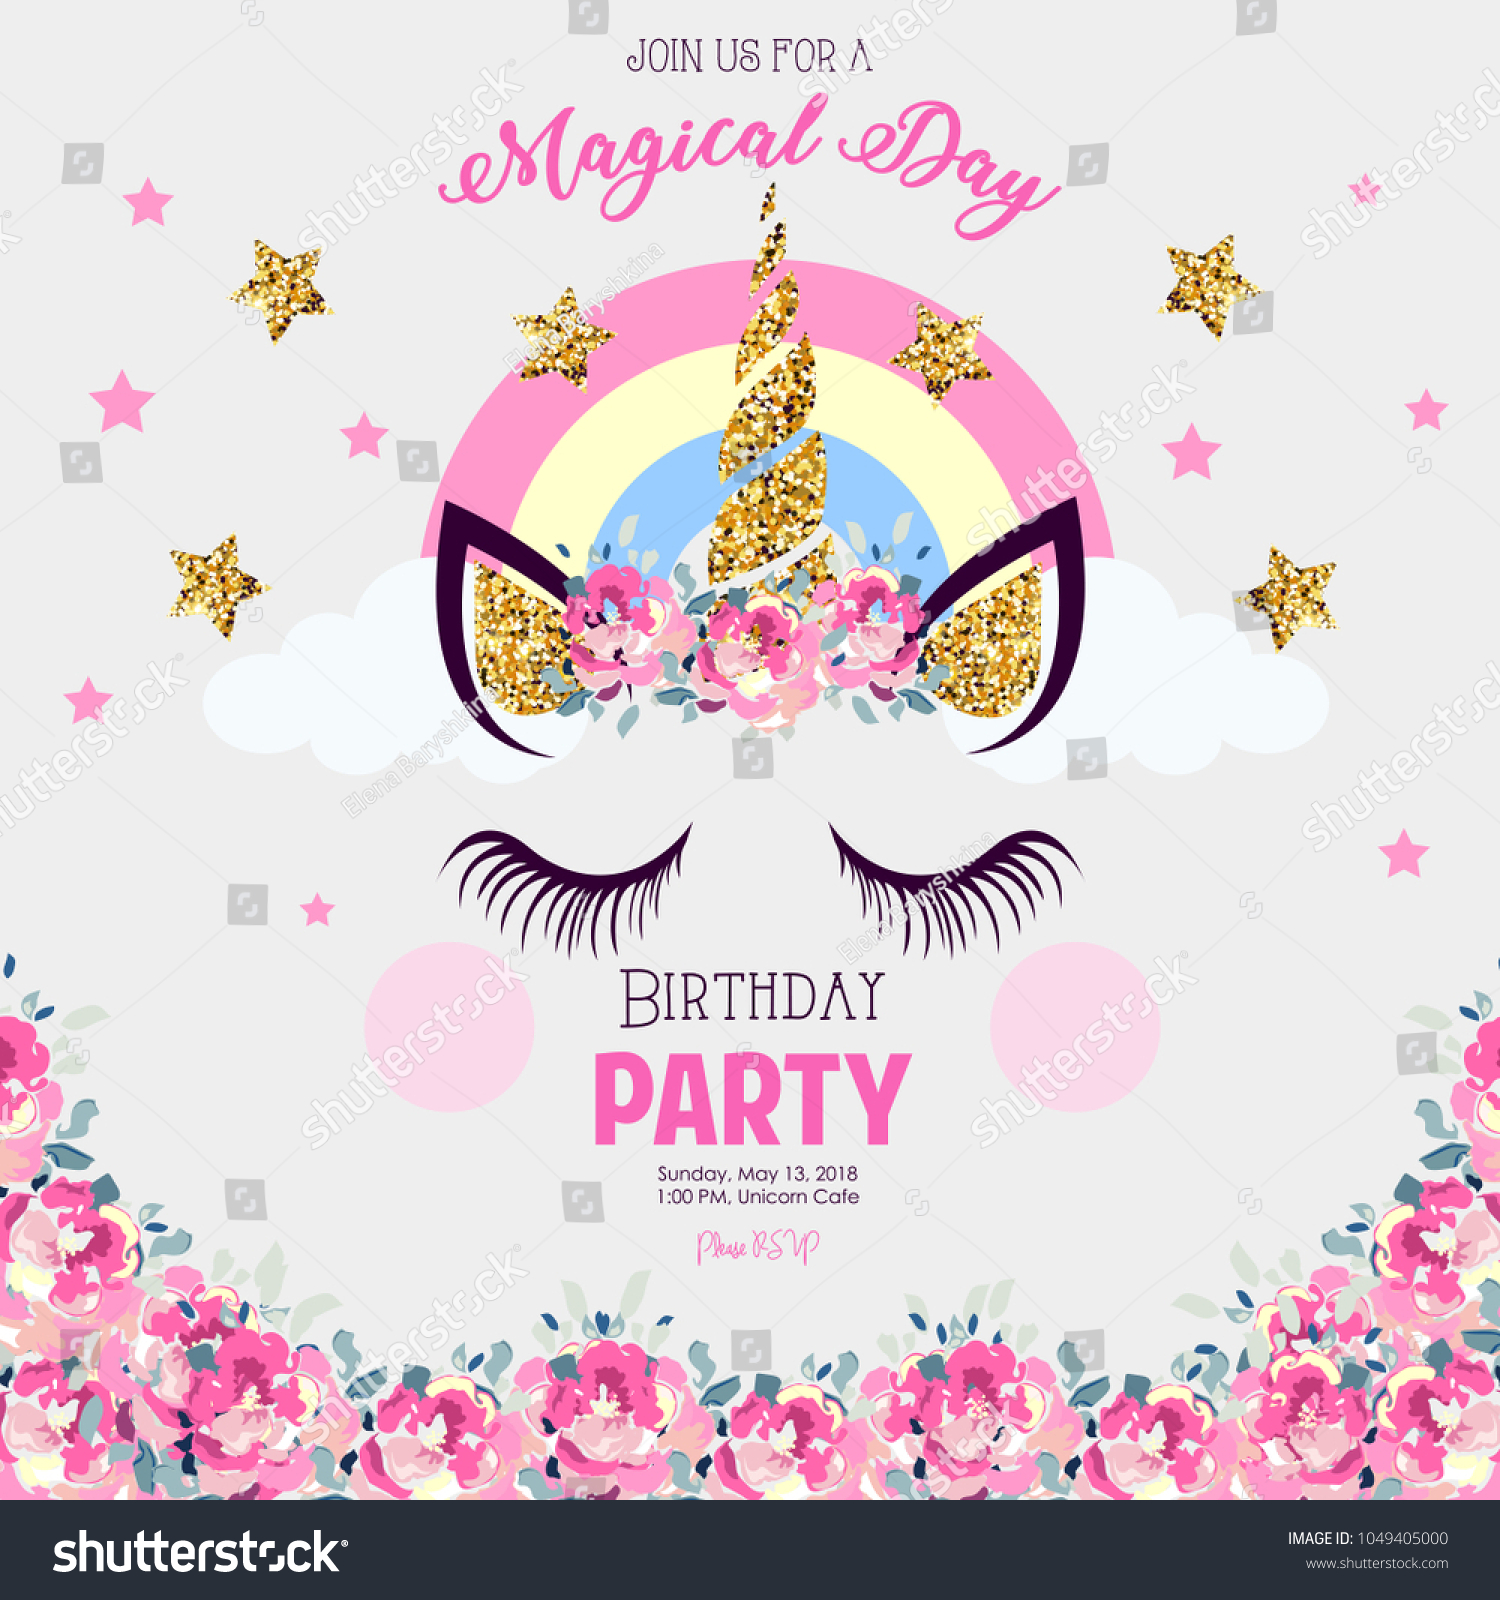 Birthday Party Invitation Unicorn Stock Illustration 1049405000 ...